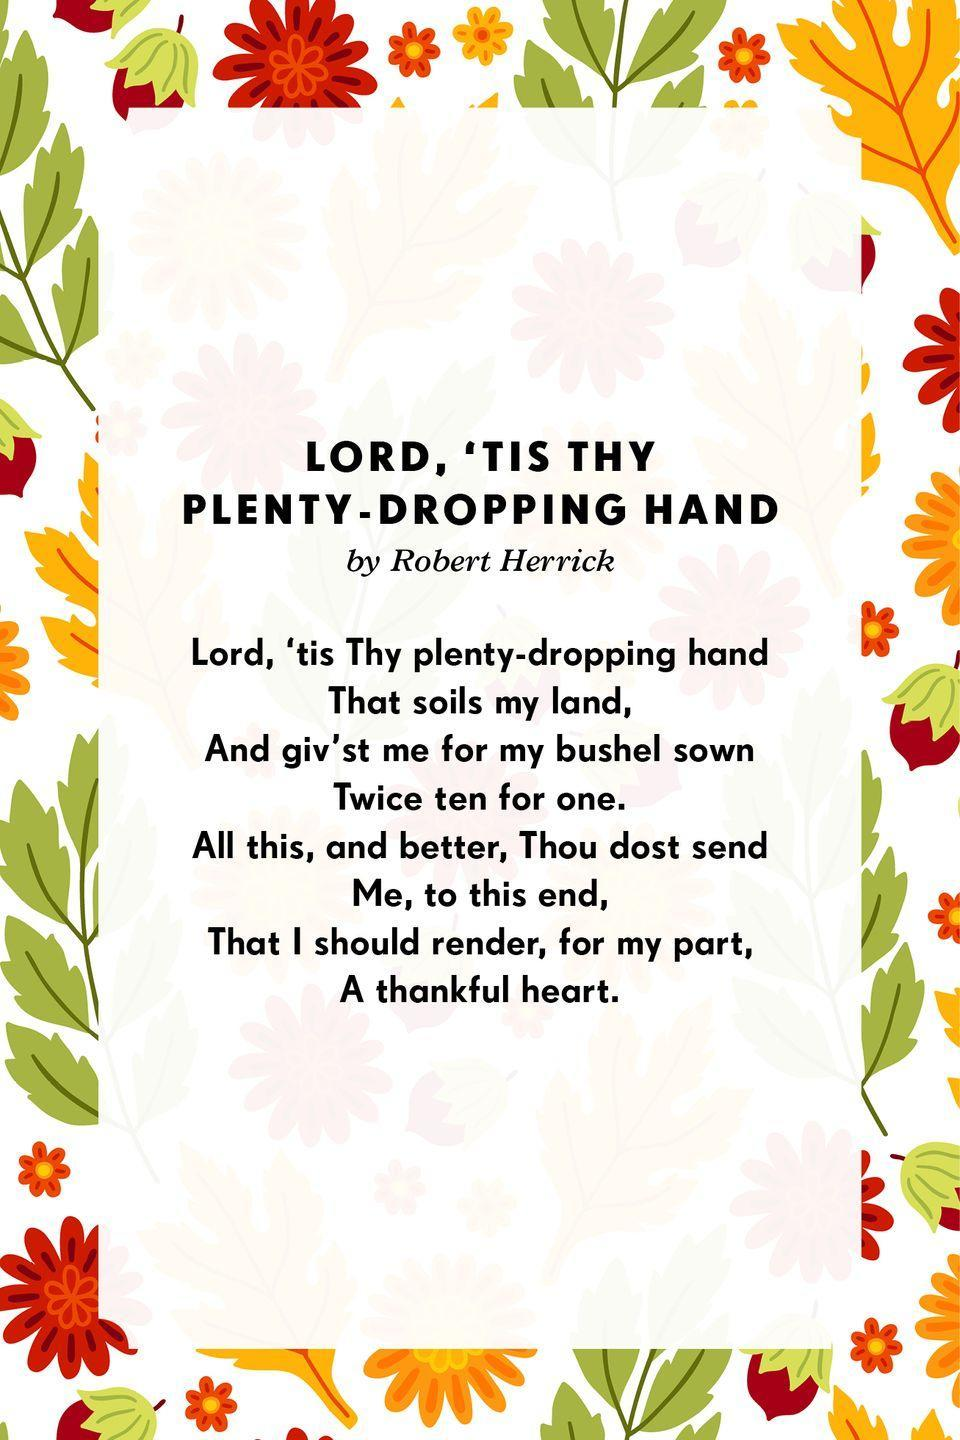 <p><strong>Lord, 'tis Thy plenty-dropping hand</strong></p><p>Lord, 'tis Thy plenty-dropping hand<br>That soils my land,<br>And giv'st me for my bushel sown<br>Twice ten for one.<br>All this, and better, Thou dost send<br>Me, to this end,<br>That I should render, for my part,<br>A thankful heart.</p>